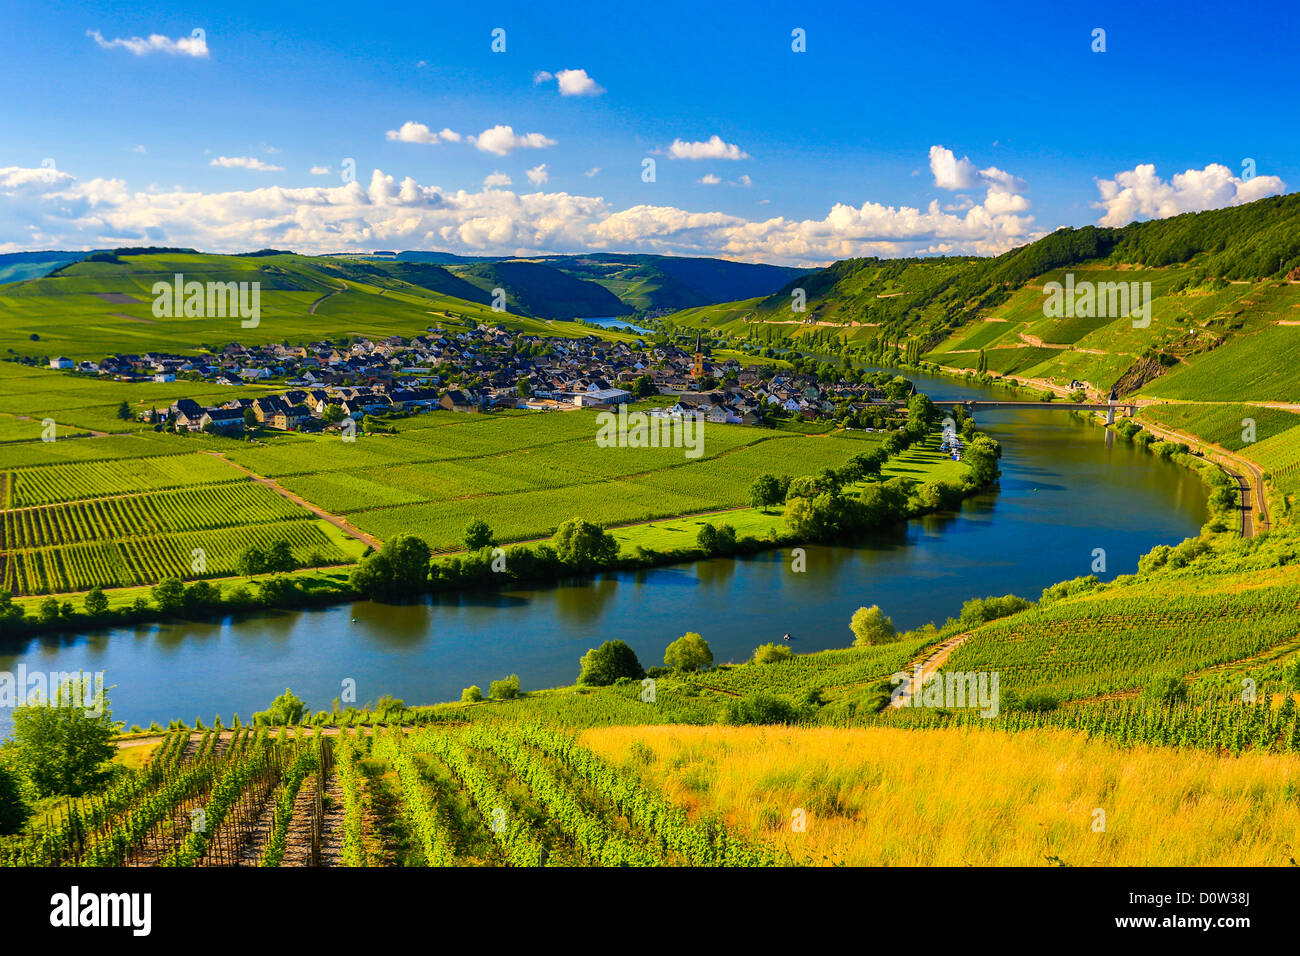 Alemania, Europa, viajes, Moseltal, Moselle, Trittenheim, Moselle, Río, viñedos, agricultura, bend, nubes, Imagen De Stock